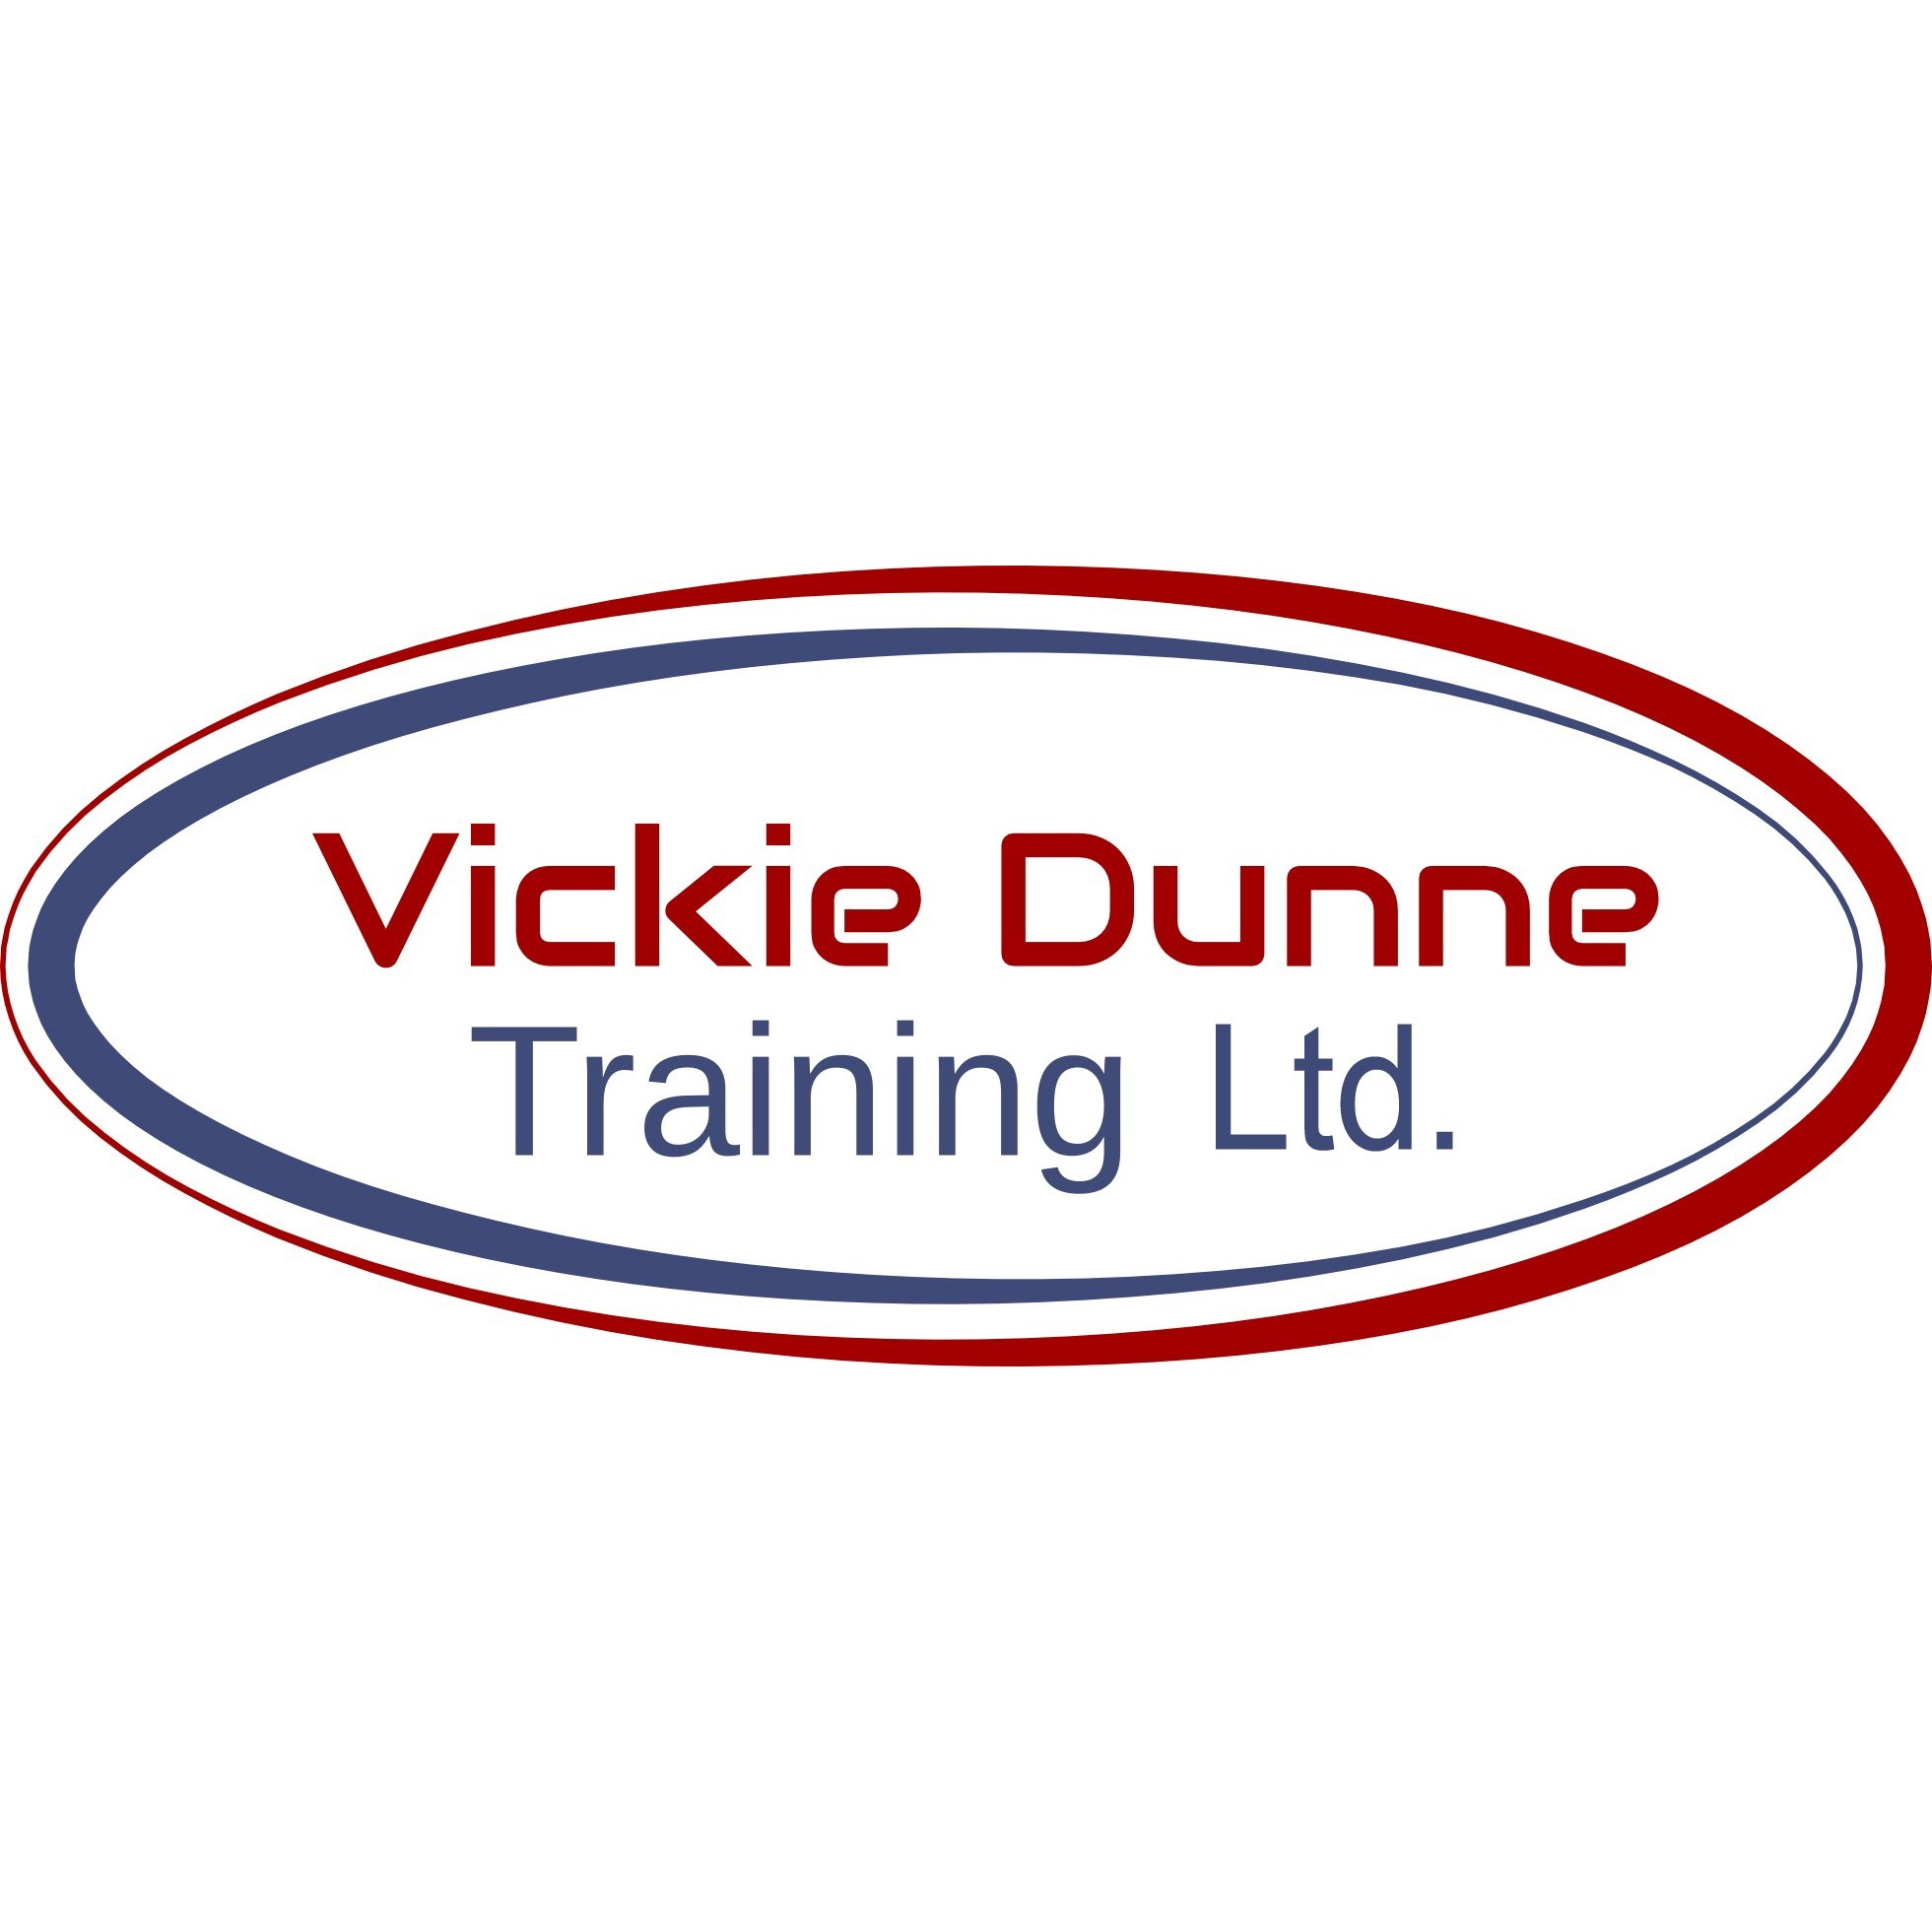 Vickie Dunne Training Ltd